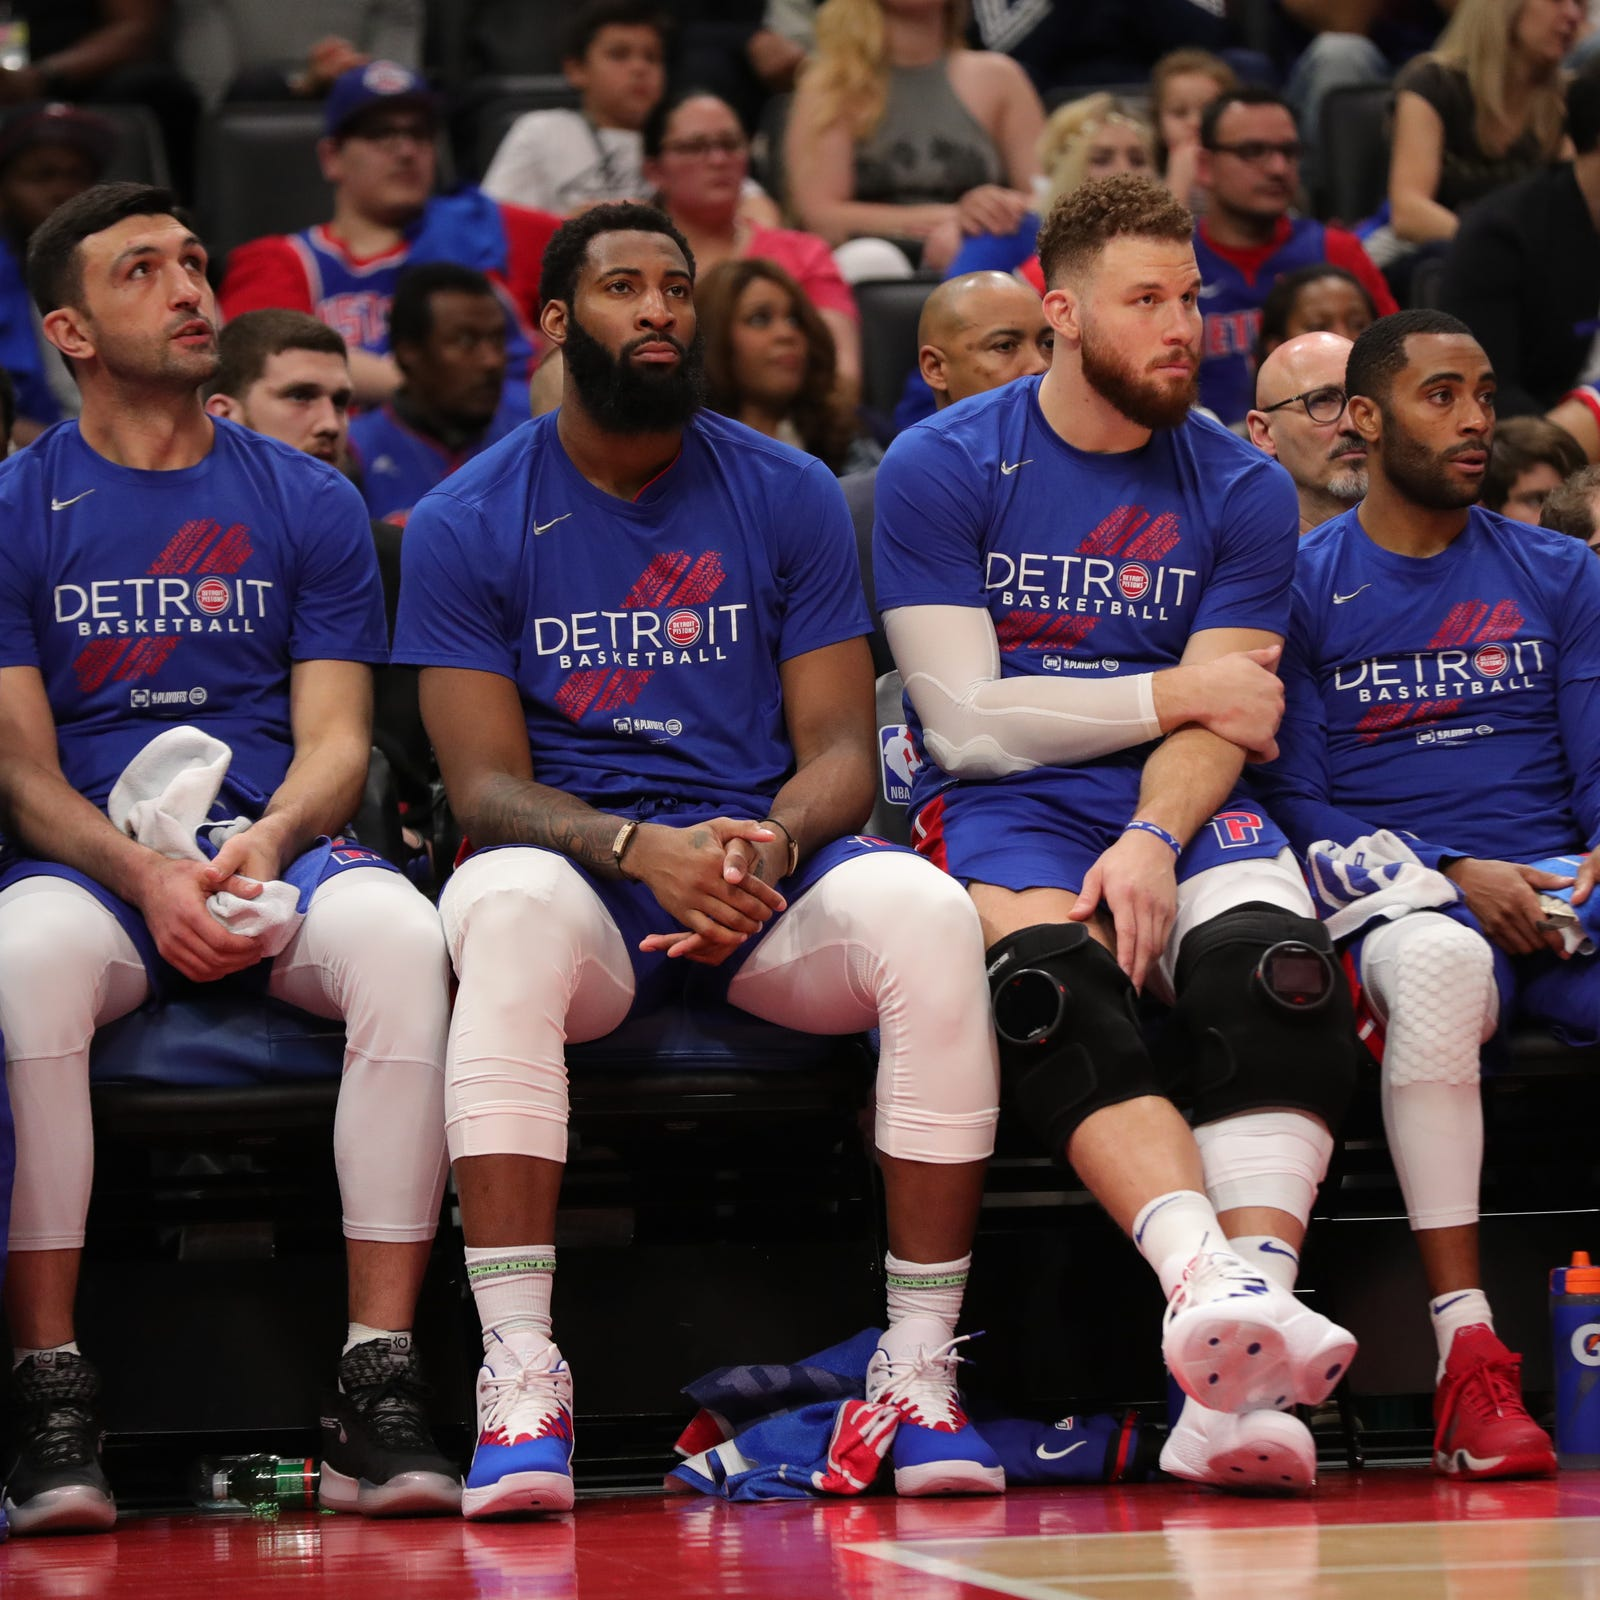 Blake Griffin gave Pistons fans reason to cheer. Andre Drummond took it away